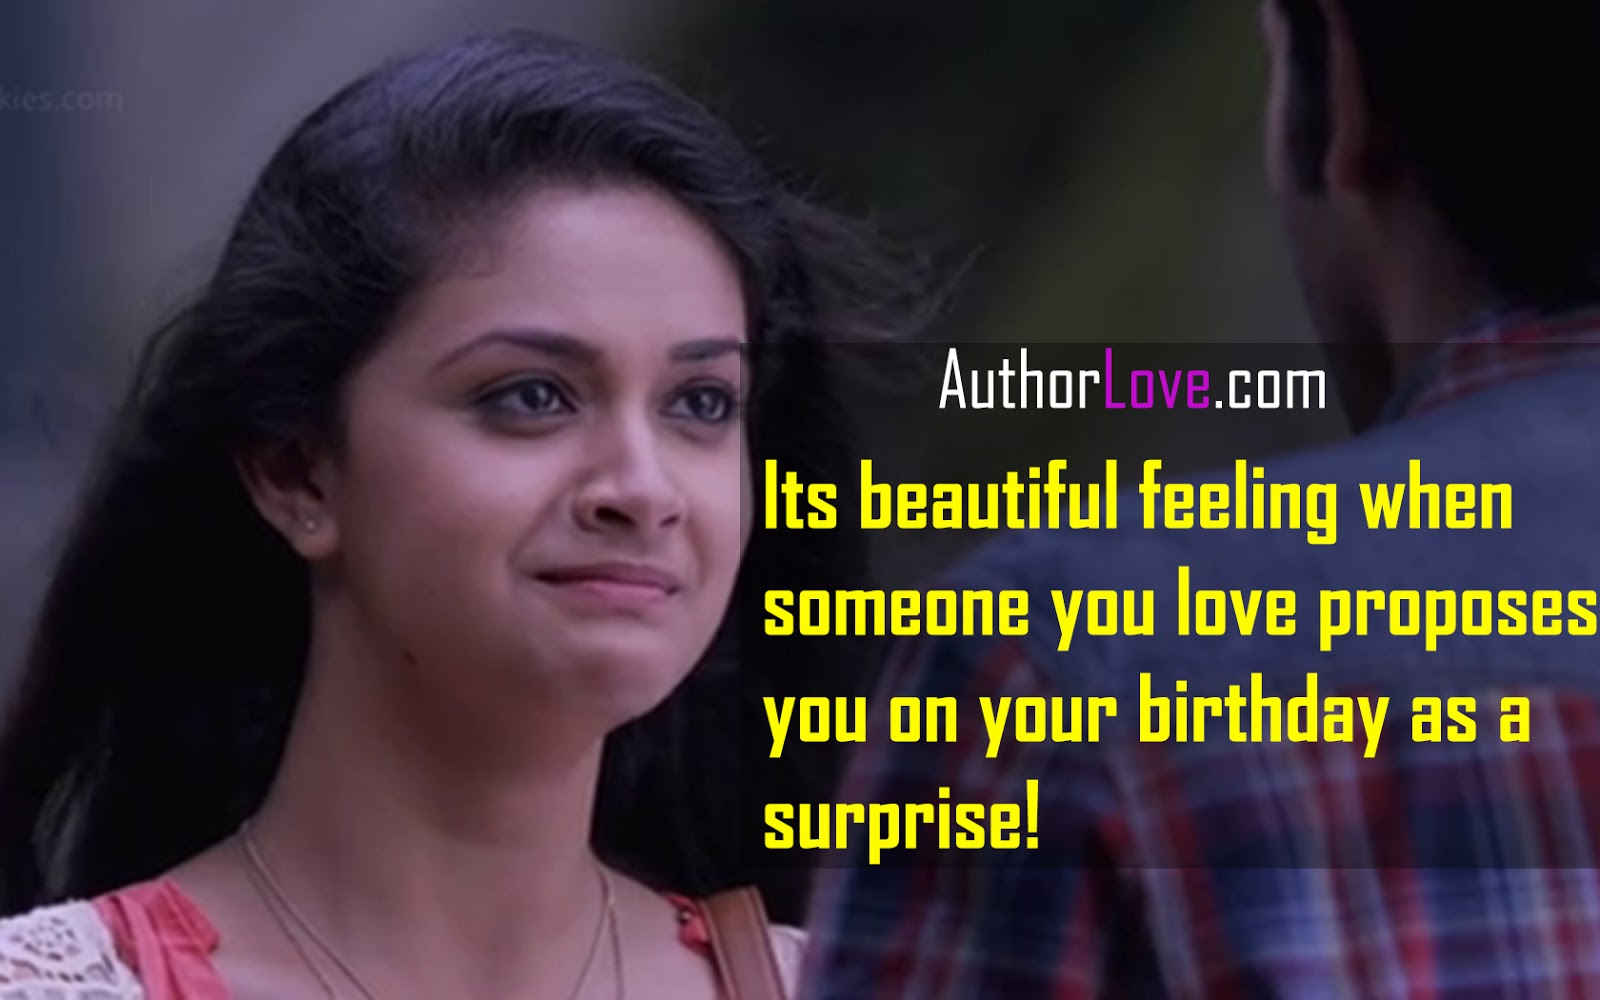 Love feeling quotes love feeling quotes with - Its Beautiful Feeling When Someone You Love Movie Love Quotes